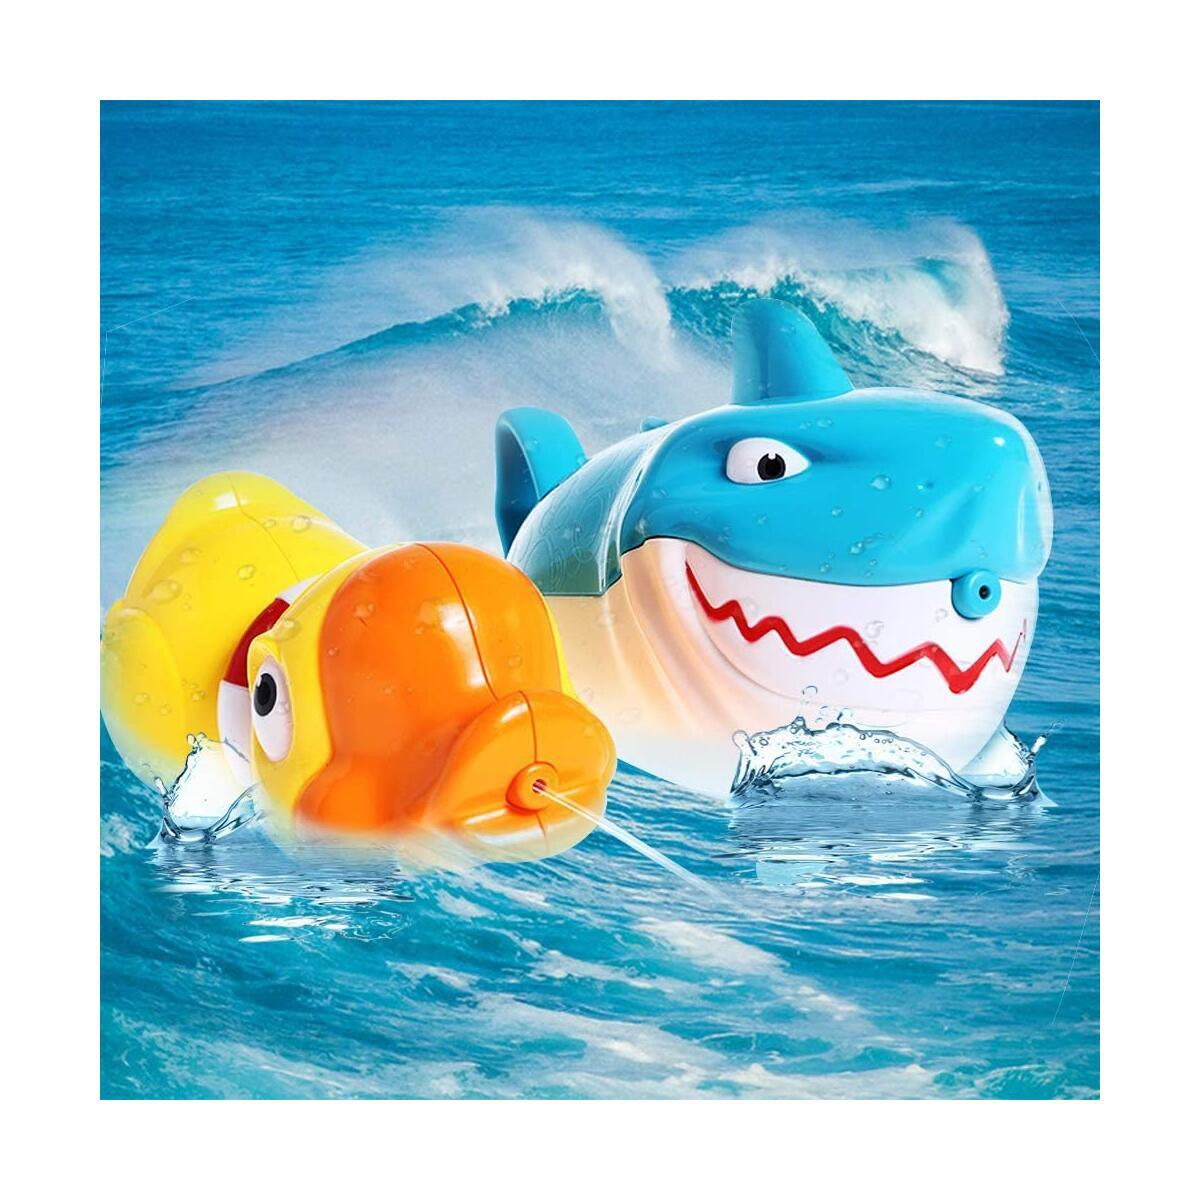 sunwuking bath toys pool toys water guns - Shark Duck (2020 NEW)- Bathtub Beach Water Table Shooter for Toddlers Kids baby Boys Girls Age 2 3 4 5 6 7 8 10 Years Old